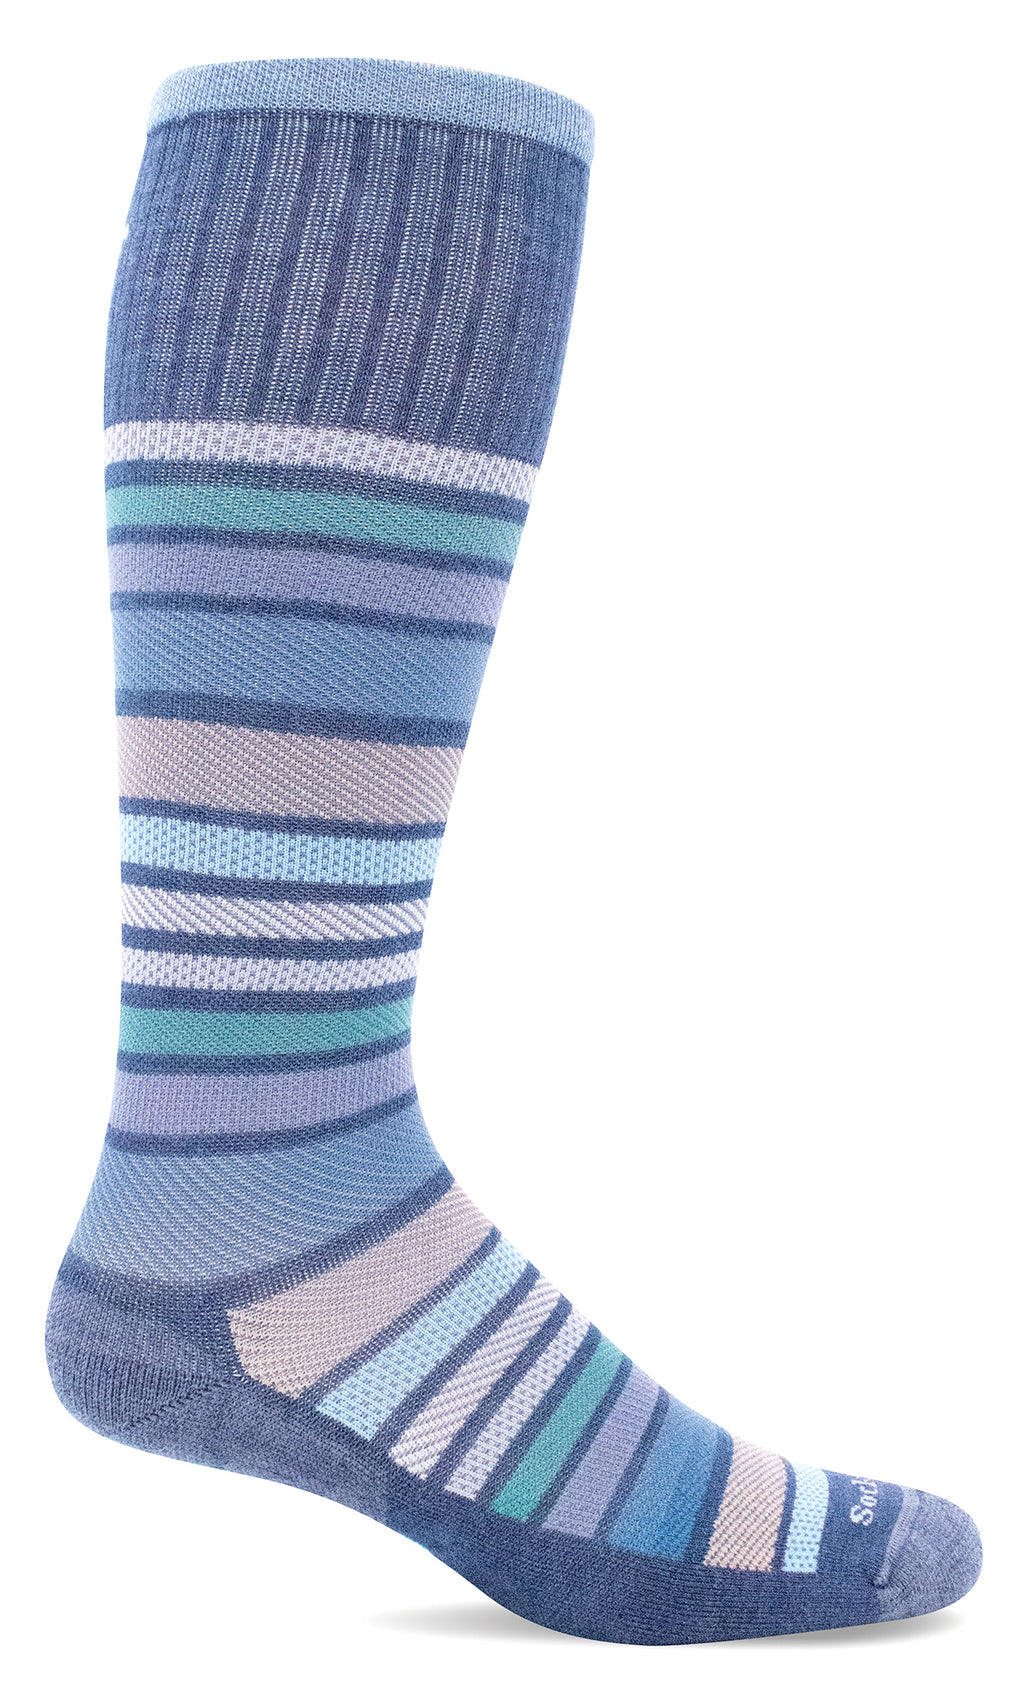 Men's Twillful | Moderate Graduated Compression Socks